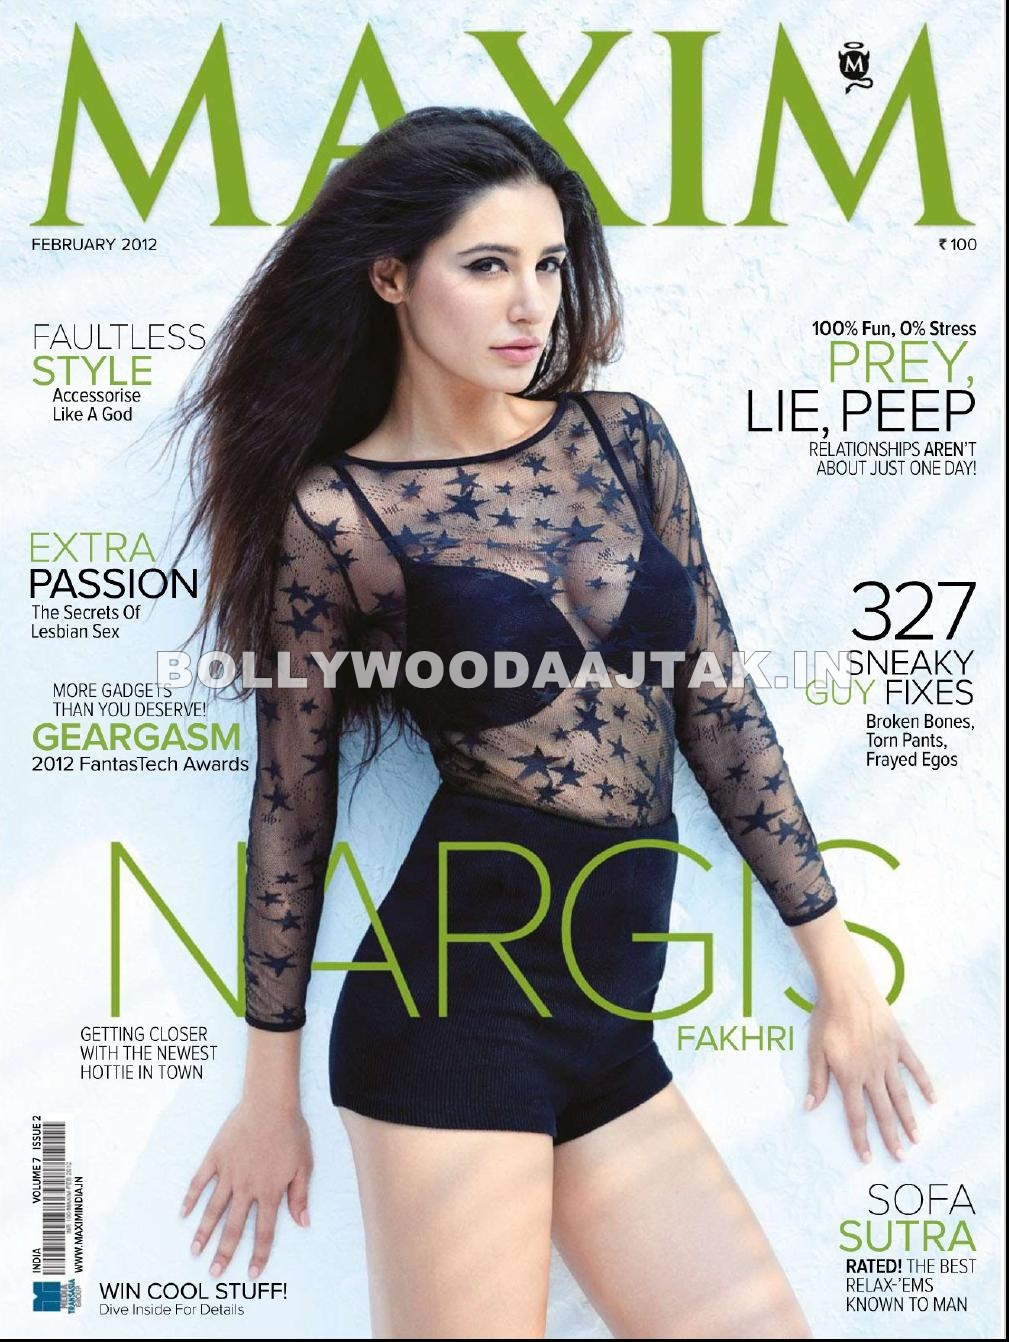 Nargis Fakhri Maxim Magazine Scan1 -  Nargis Fakhri Maxim Magazine India HQ Scans February 2012